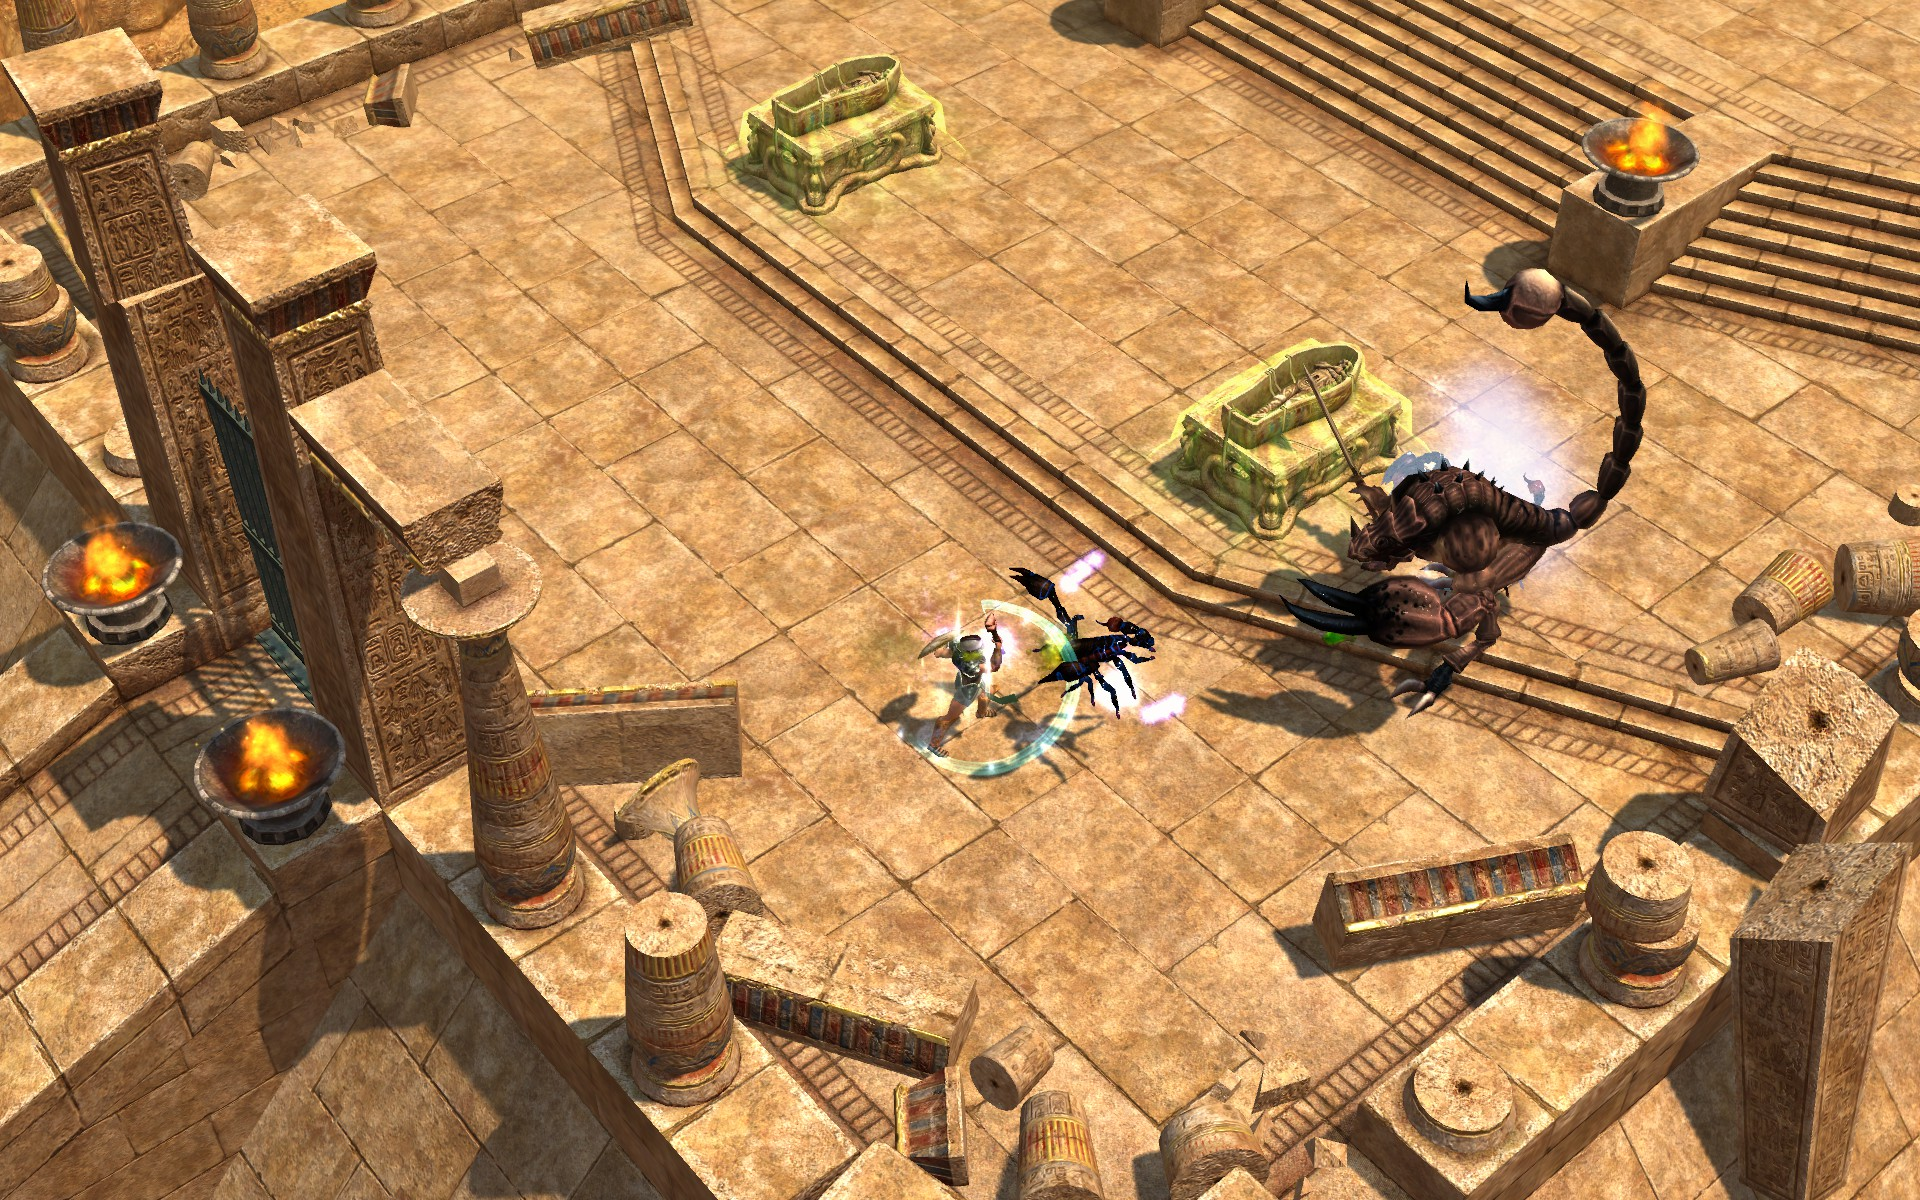 TItan Quest Review image 2